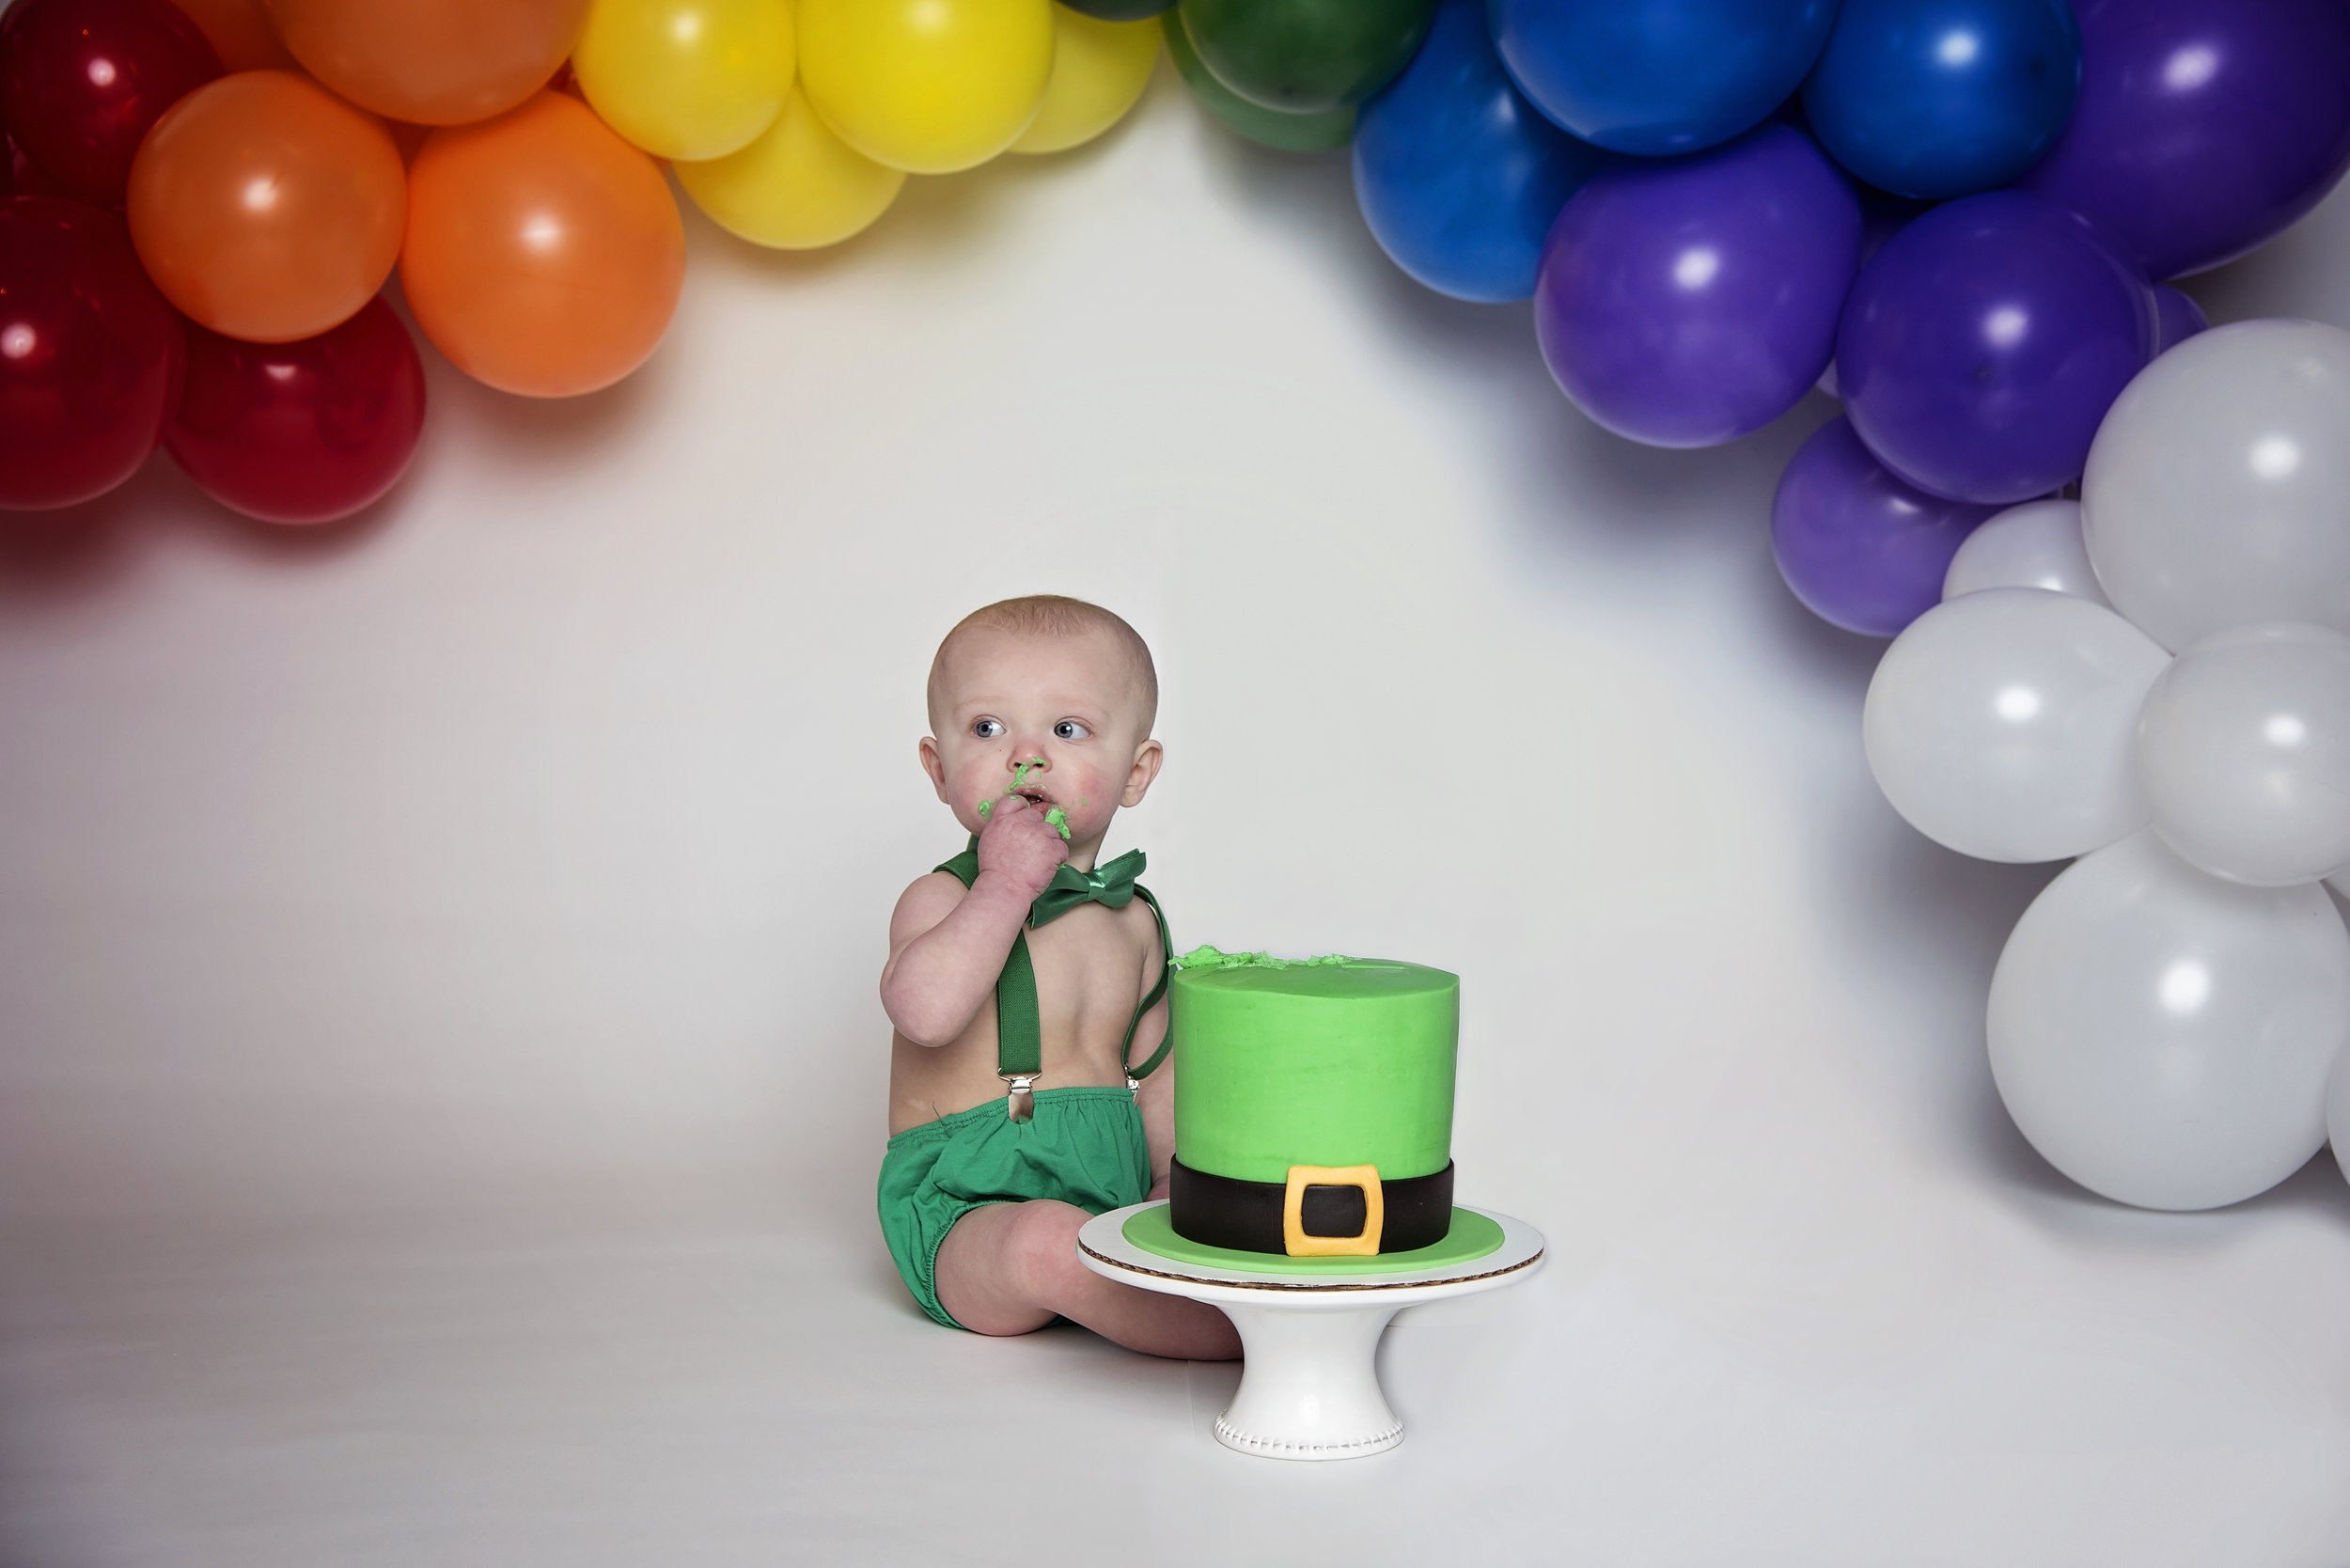 First Birthday Cake Smash Cincinnati Ohio St Patrick's Day Theme Little Boy Eating Cake in Green Outfit Remember When Portraits